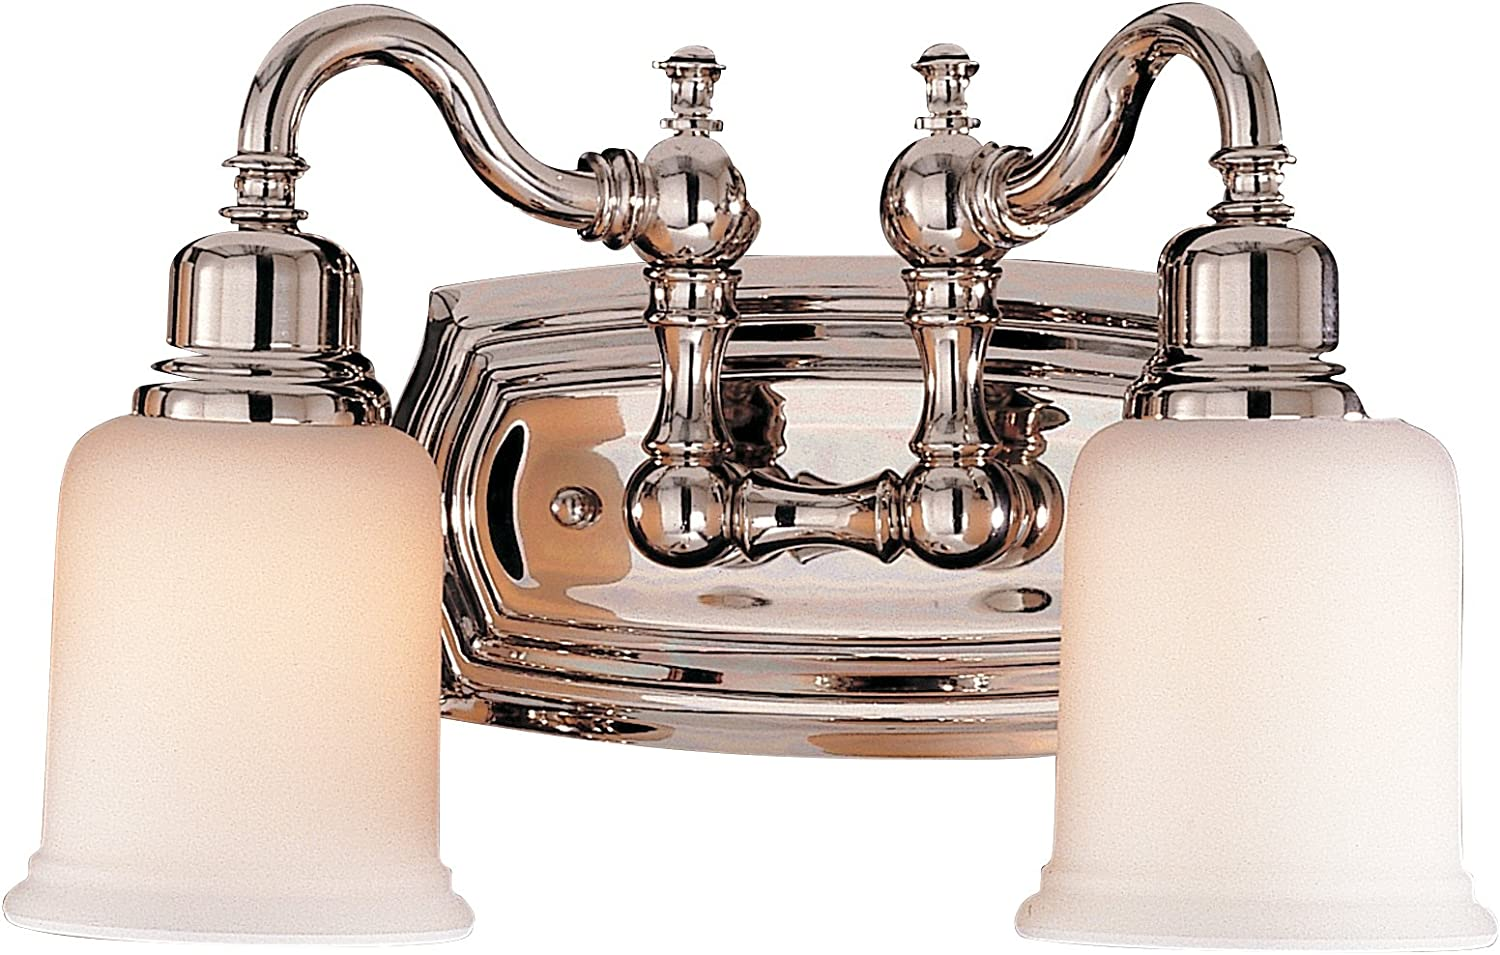 Feiss VS8002-PN Canterbury Glass Wall Vanity Bath Lighting, Chrome, 2-Light 14 W x 8 H 200watts